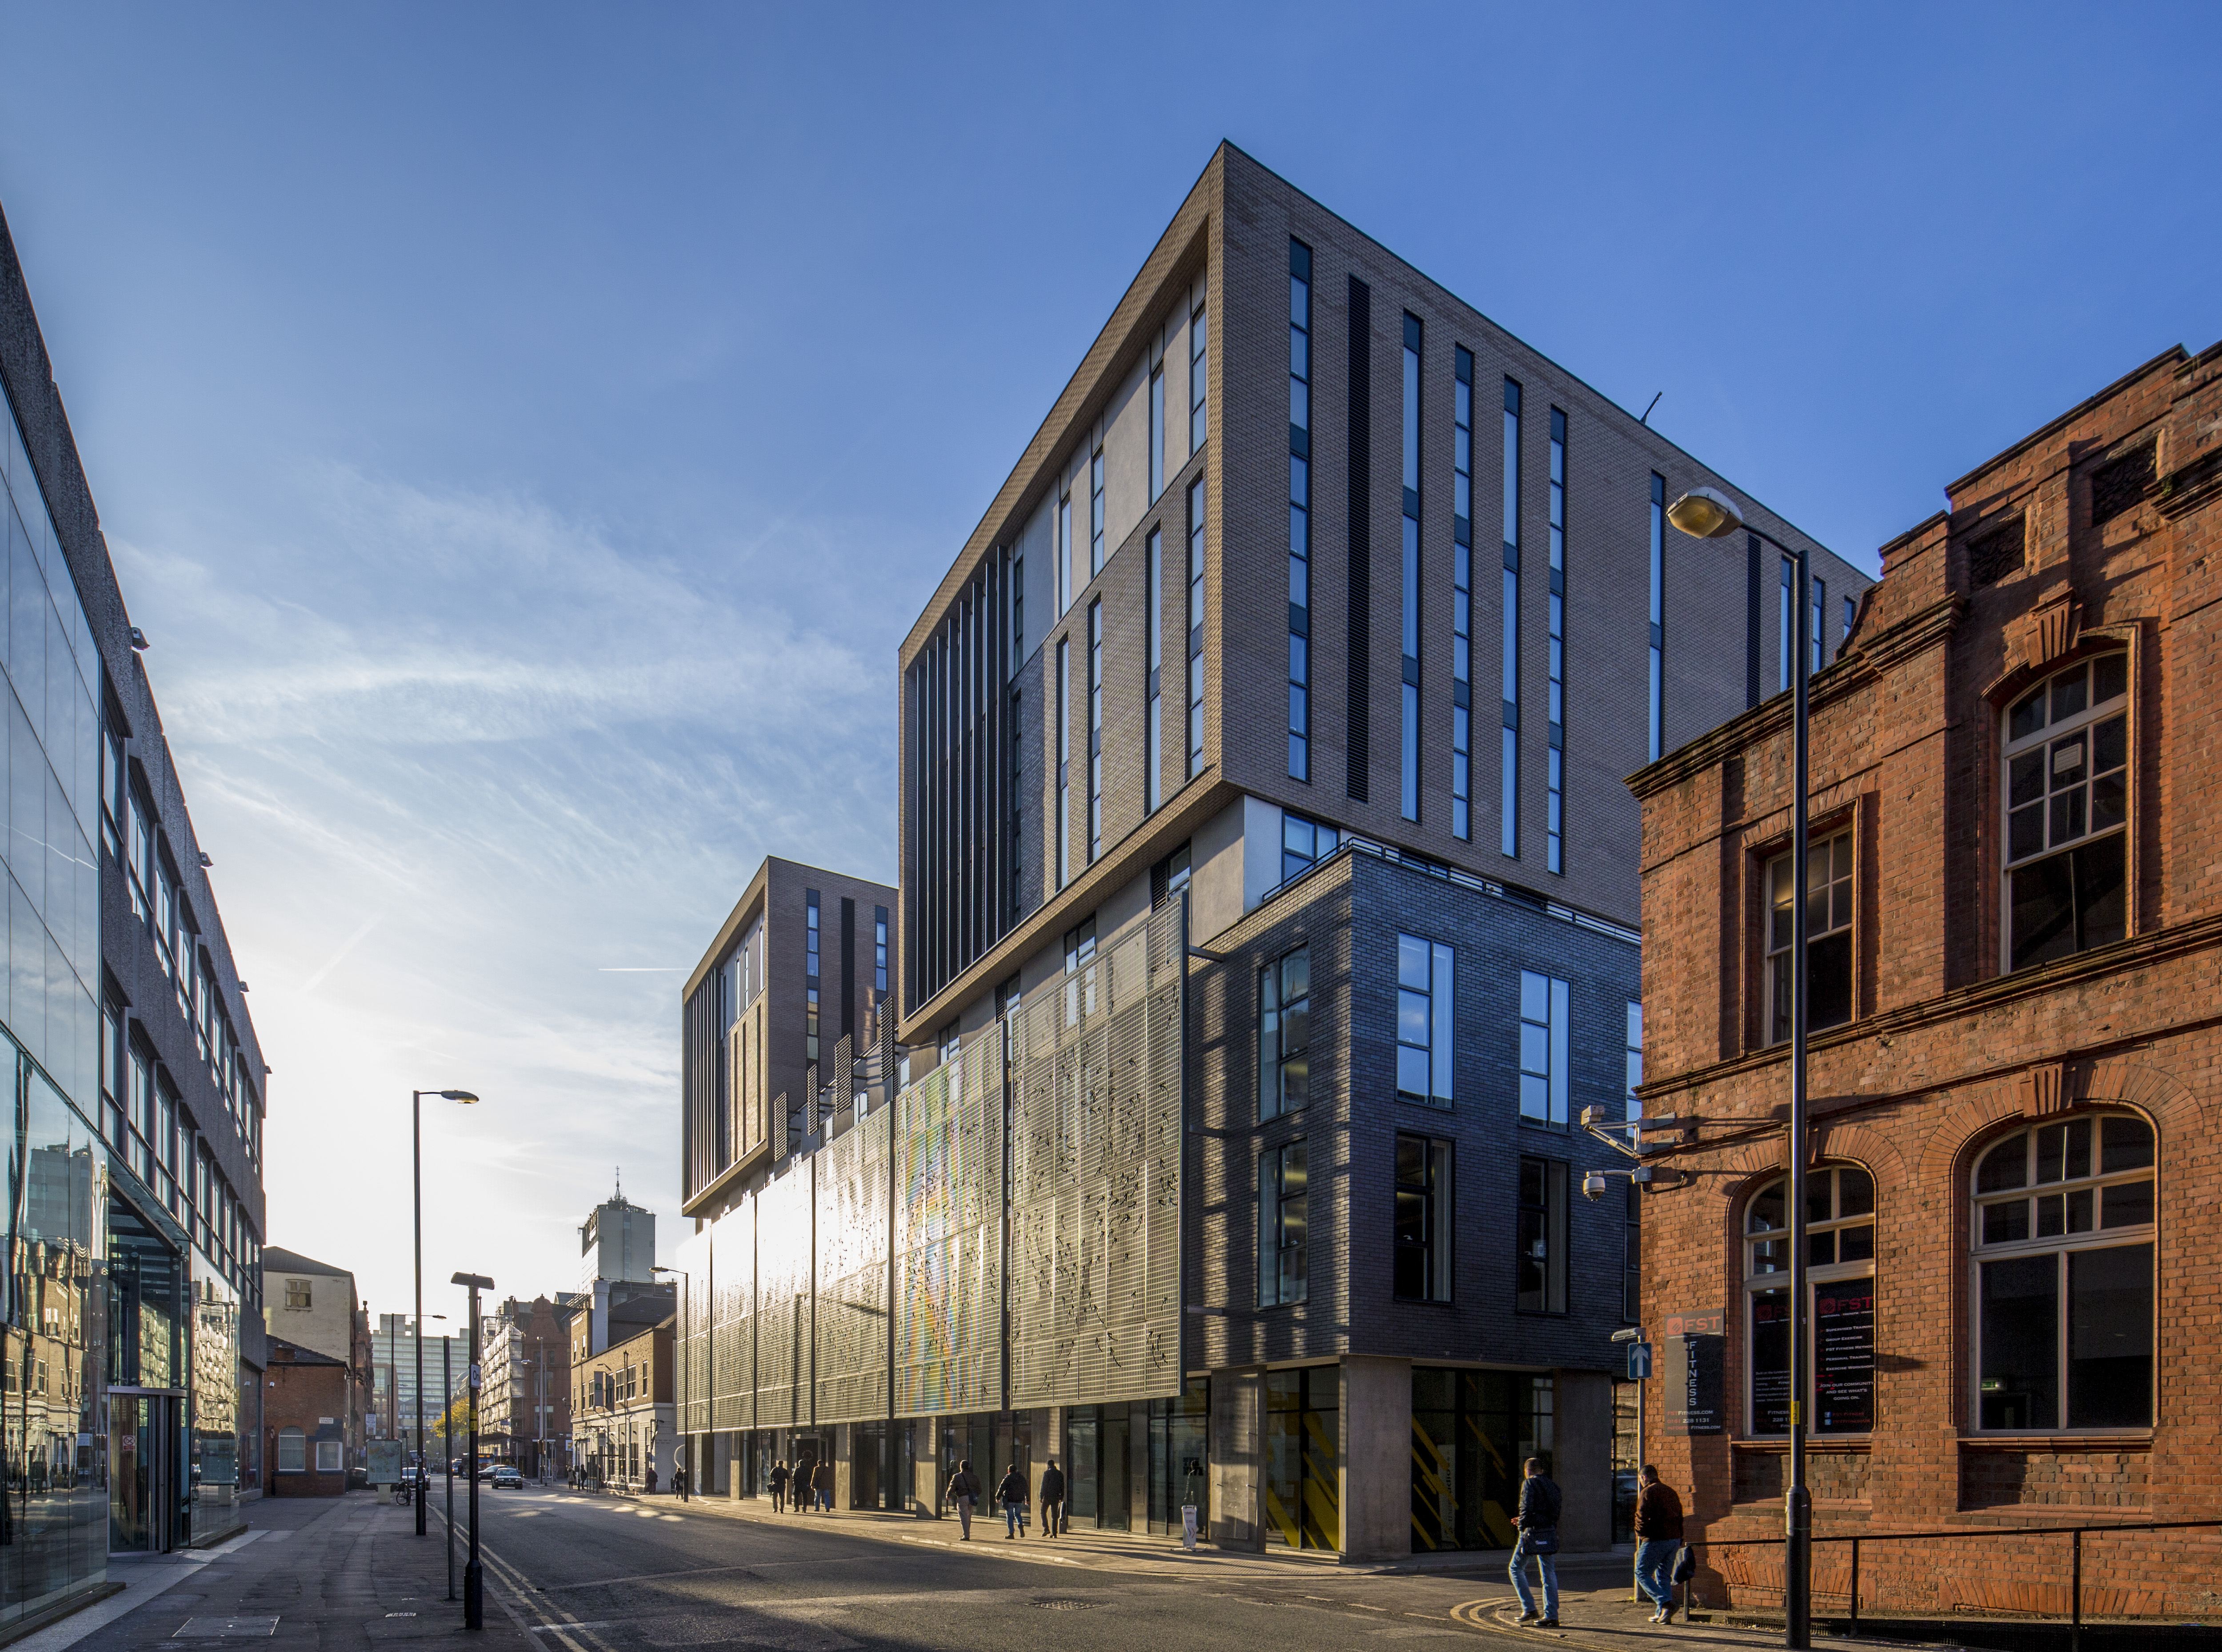 The Hive - 51 Lever Street, M1 - Manchester